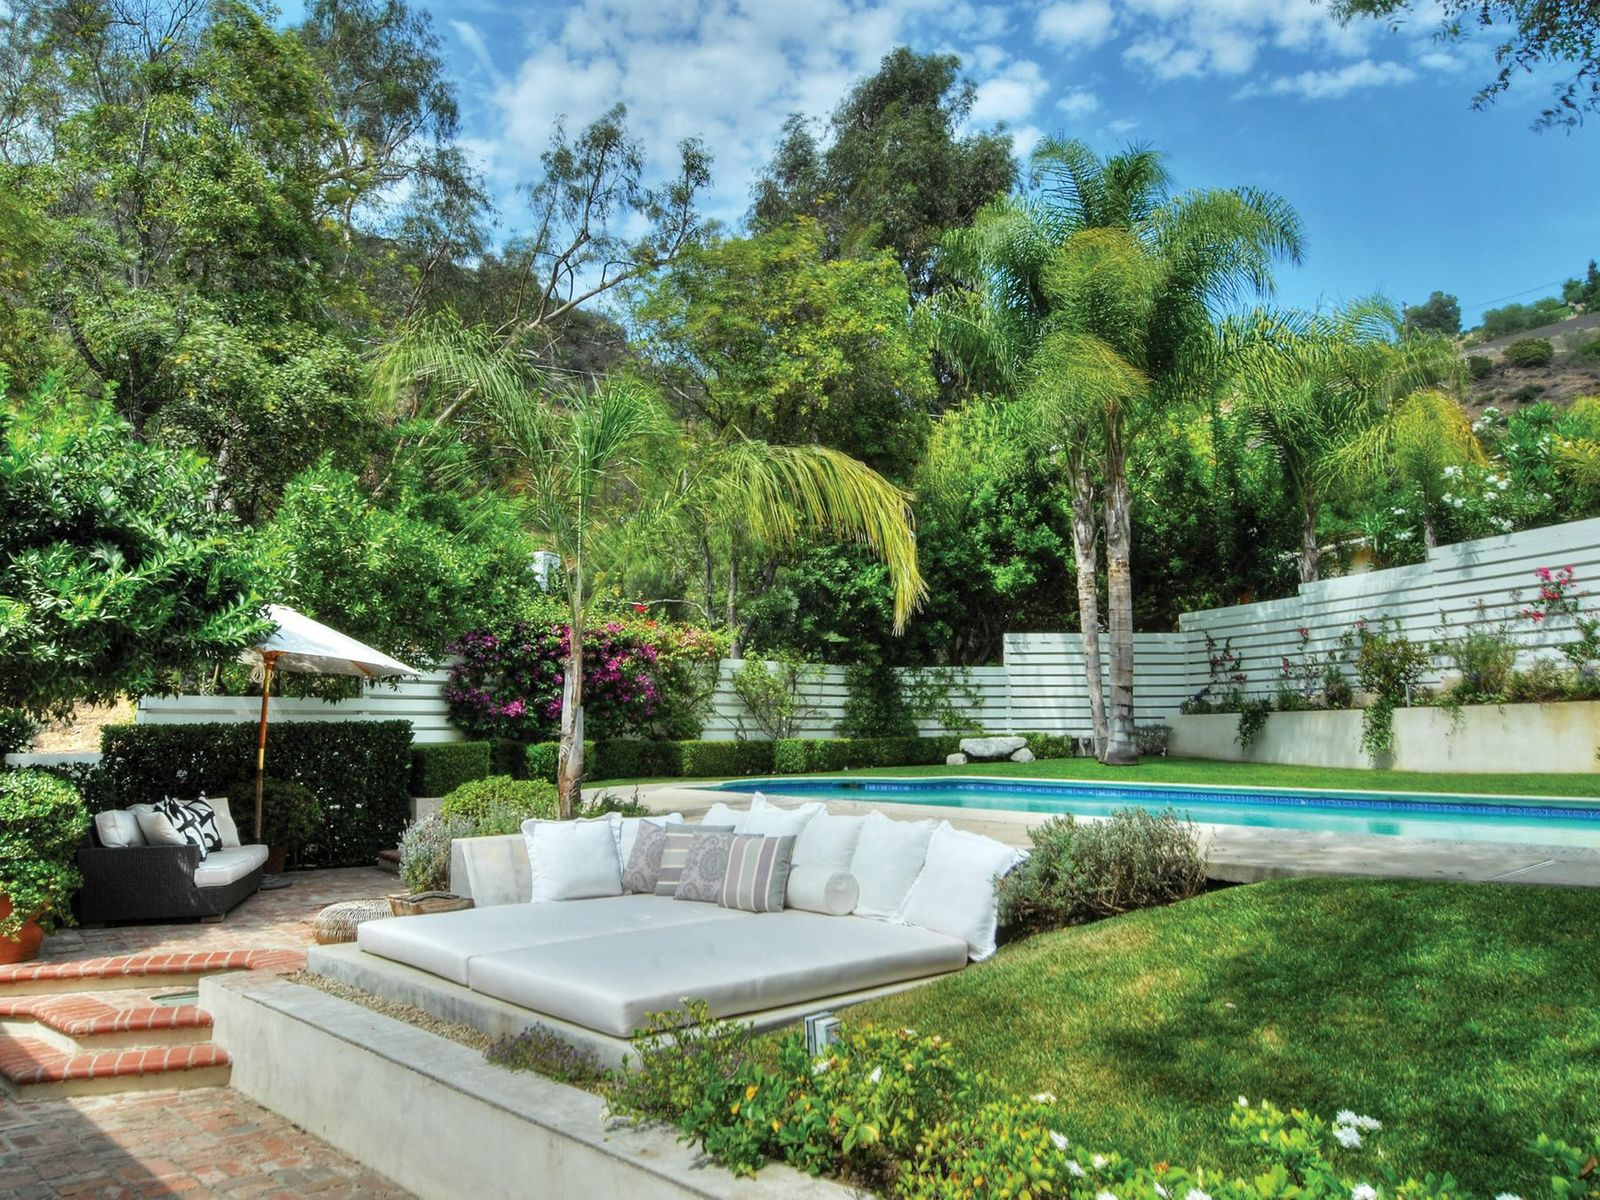 Your Own Private Hideaway, Beverly Hills CA Single Family Home - Los Angeles Real Estate